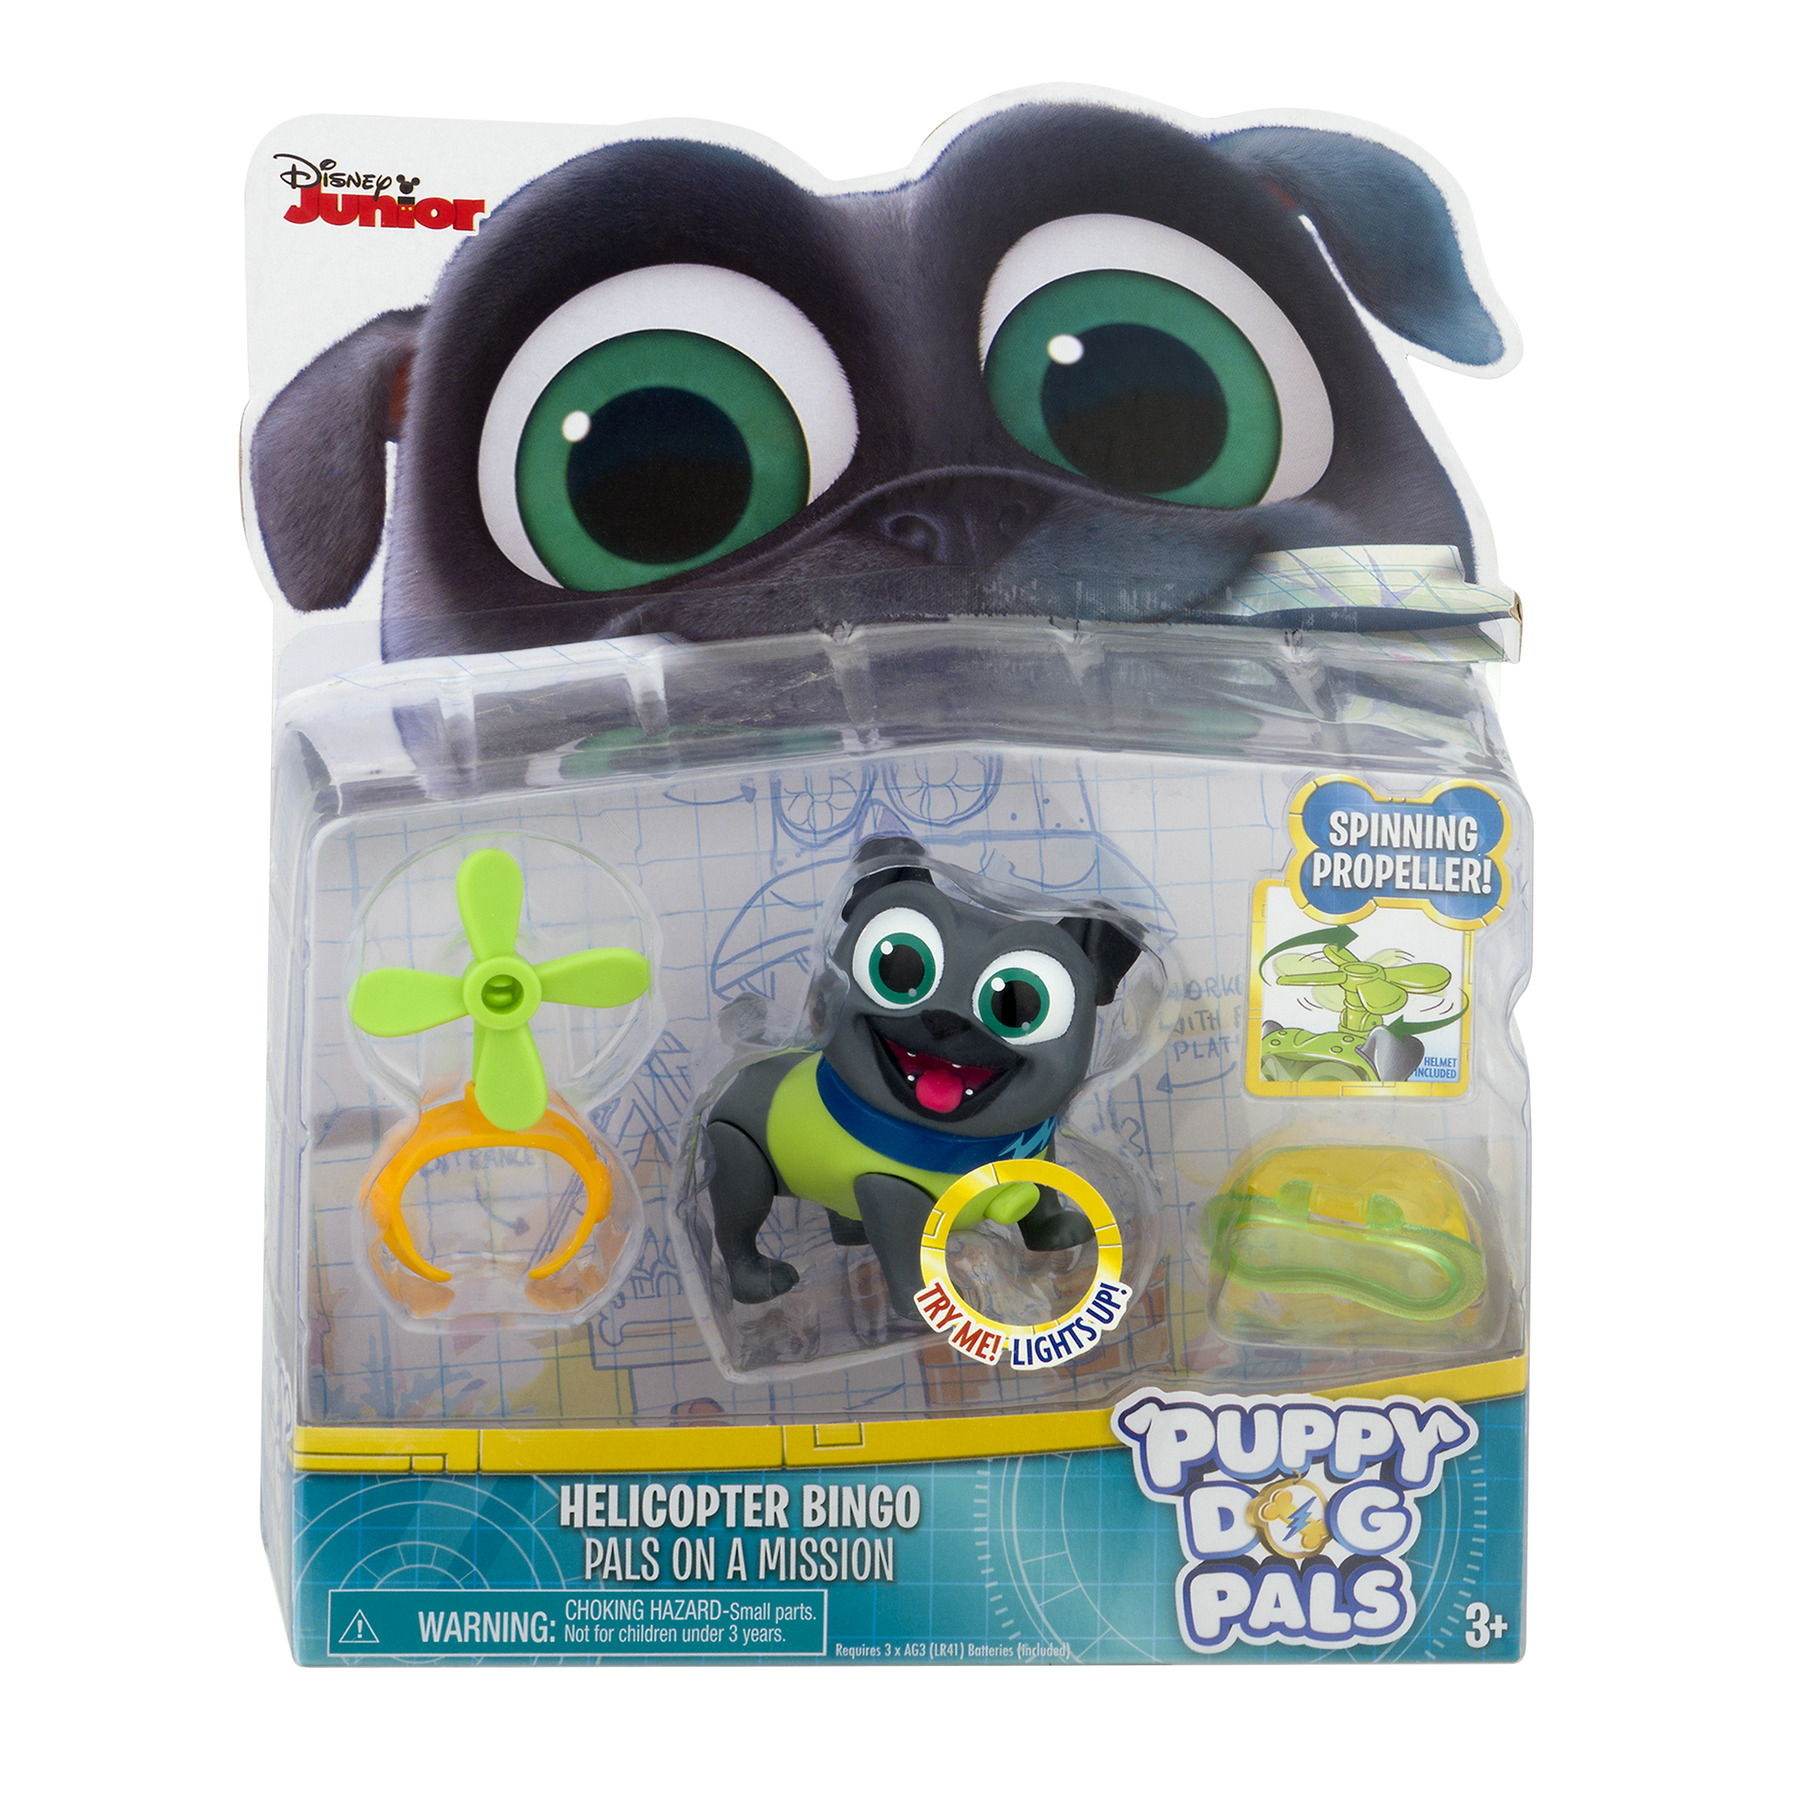 Puppy Dog Pals Light Up Pals On A Mission Bingo With Helicopter